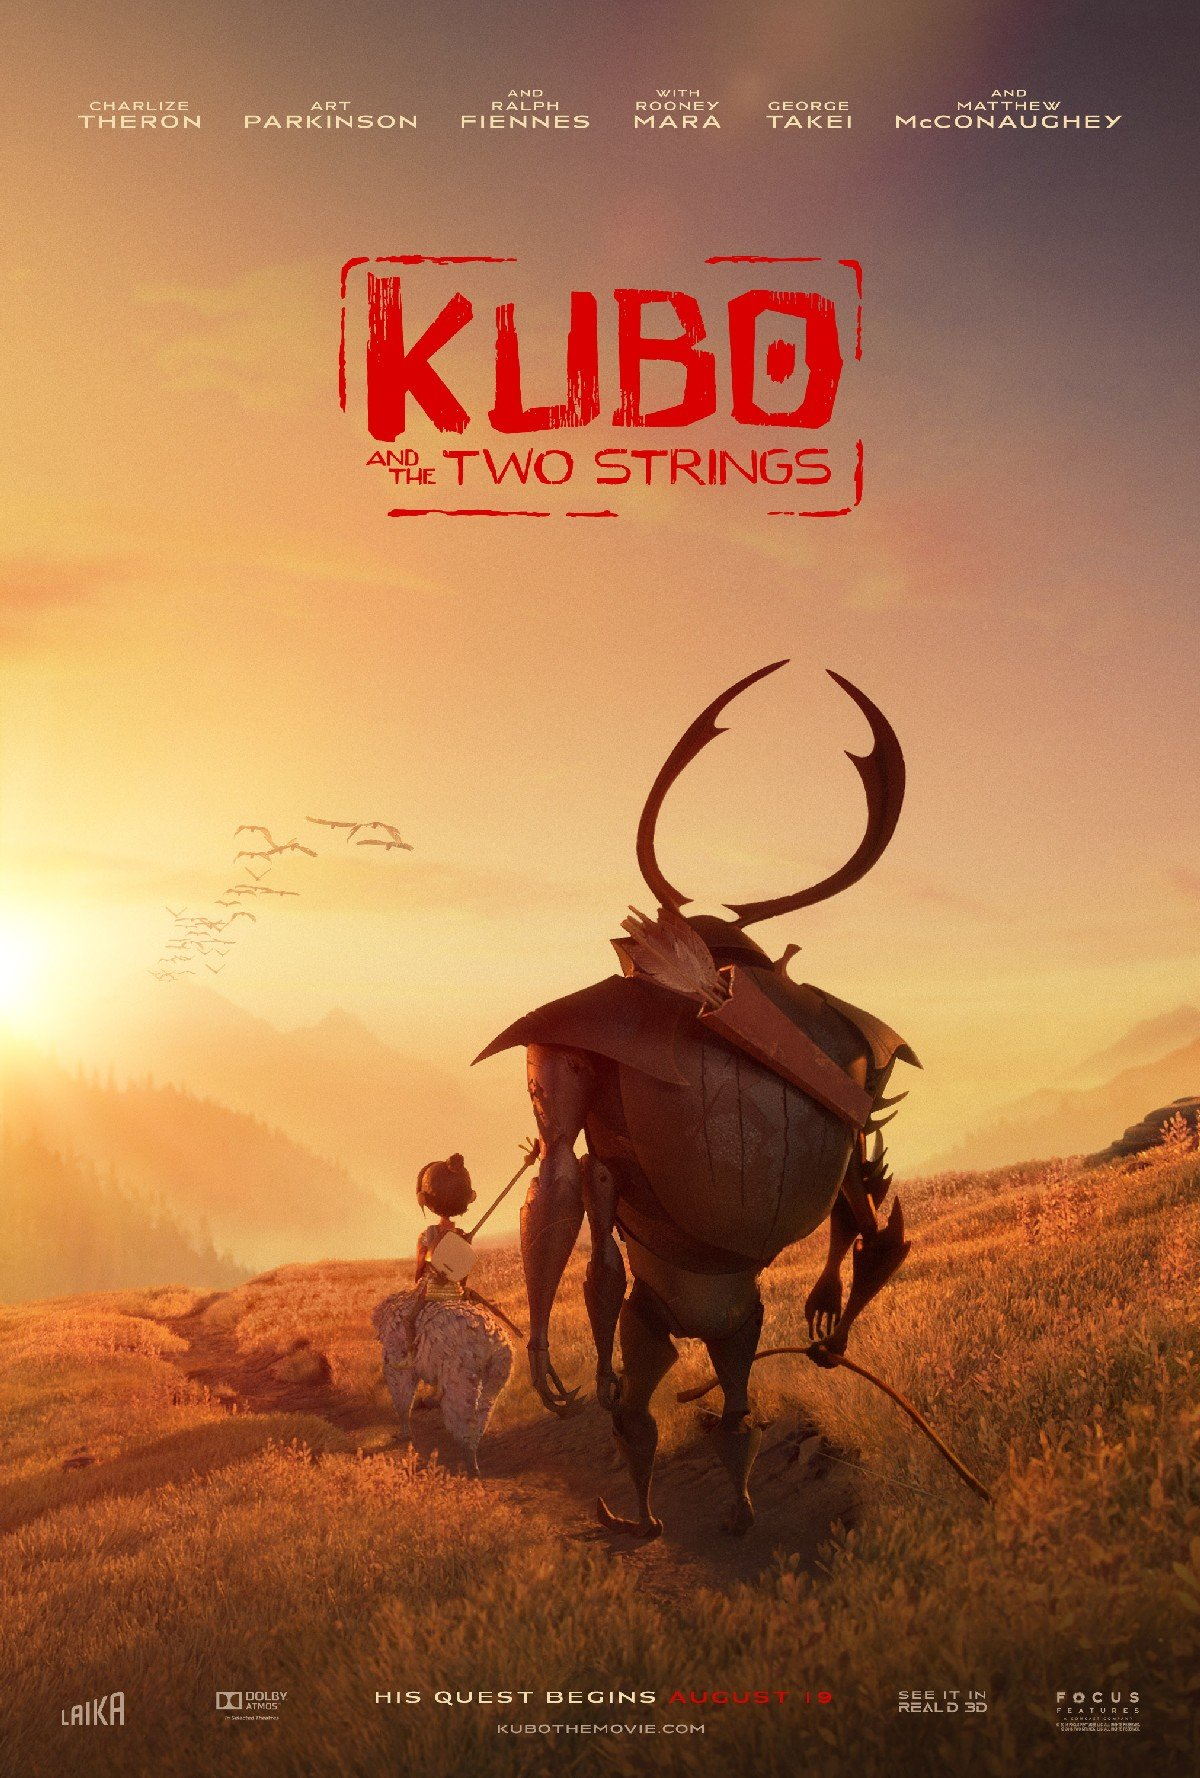 Latest Trailer For Kubo And The Two Strings Tees Up An Epic Adventure